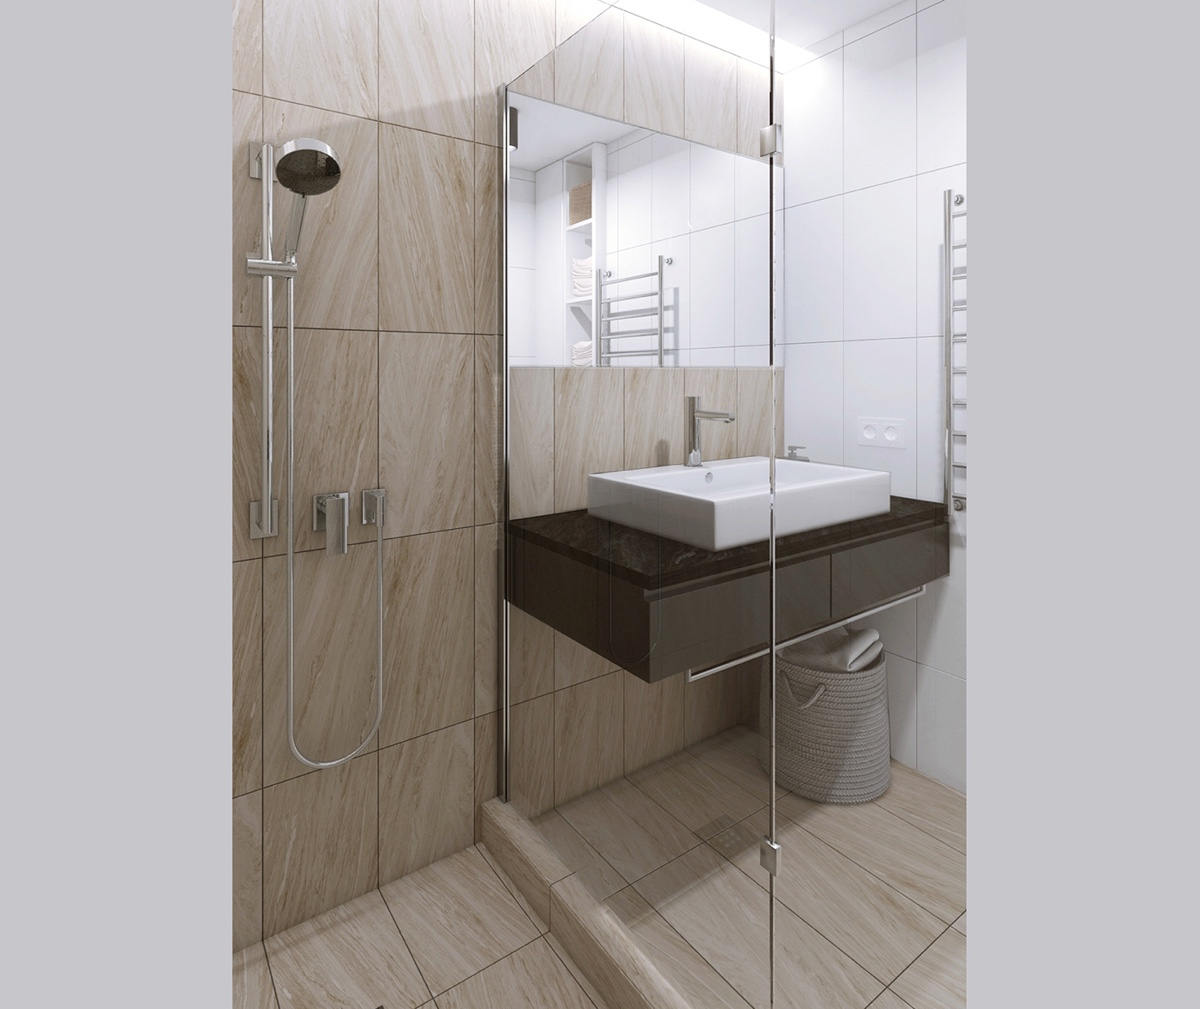 Wooden Bathroom Tiles: HOME DESIGNING: Relaxing Color Schemes In 3 Efficient